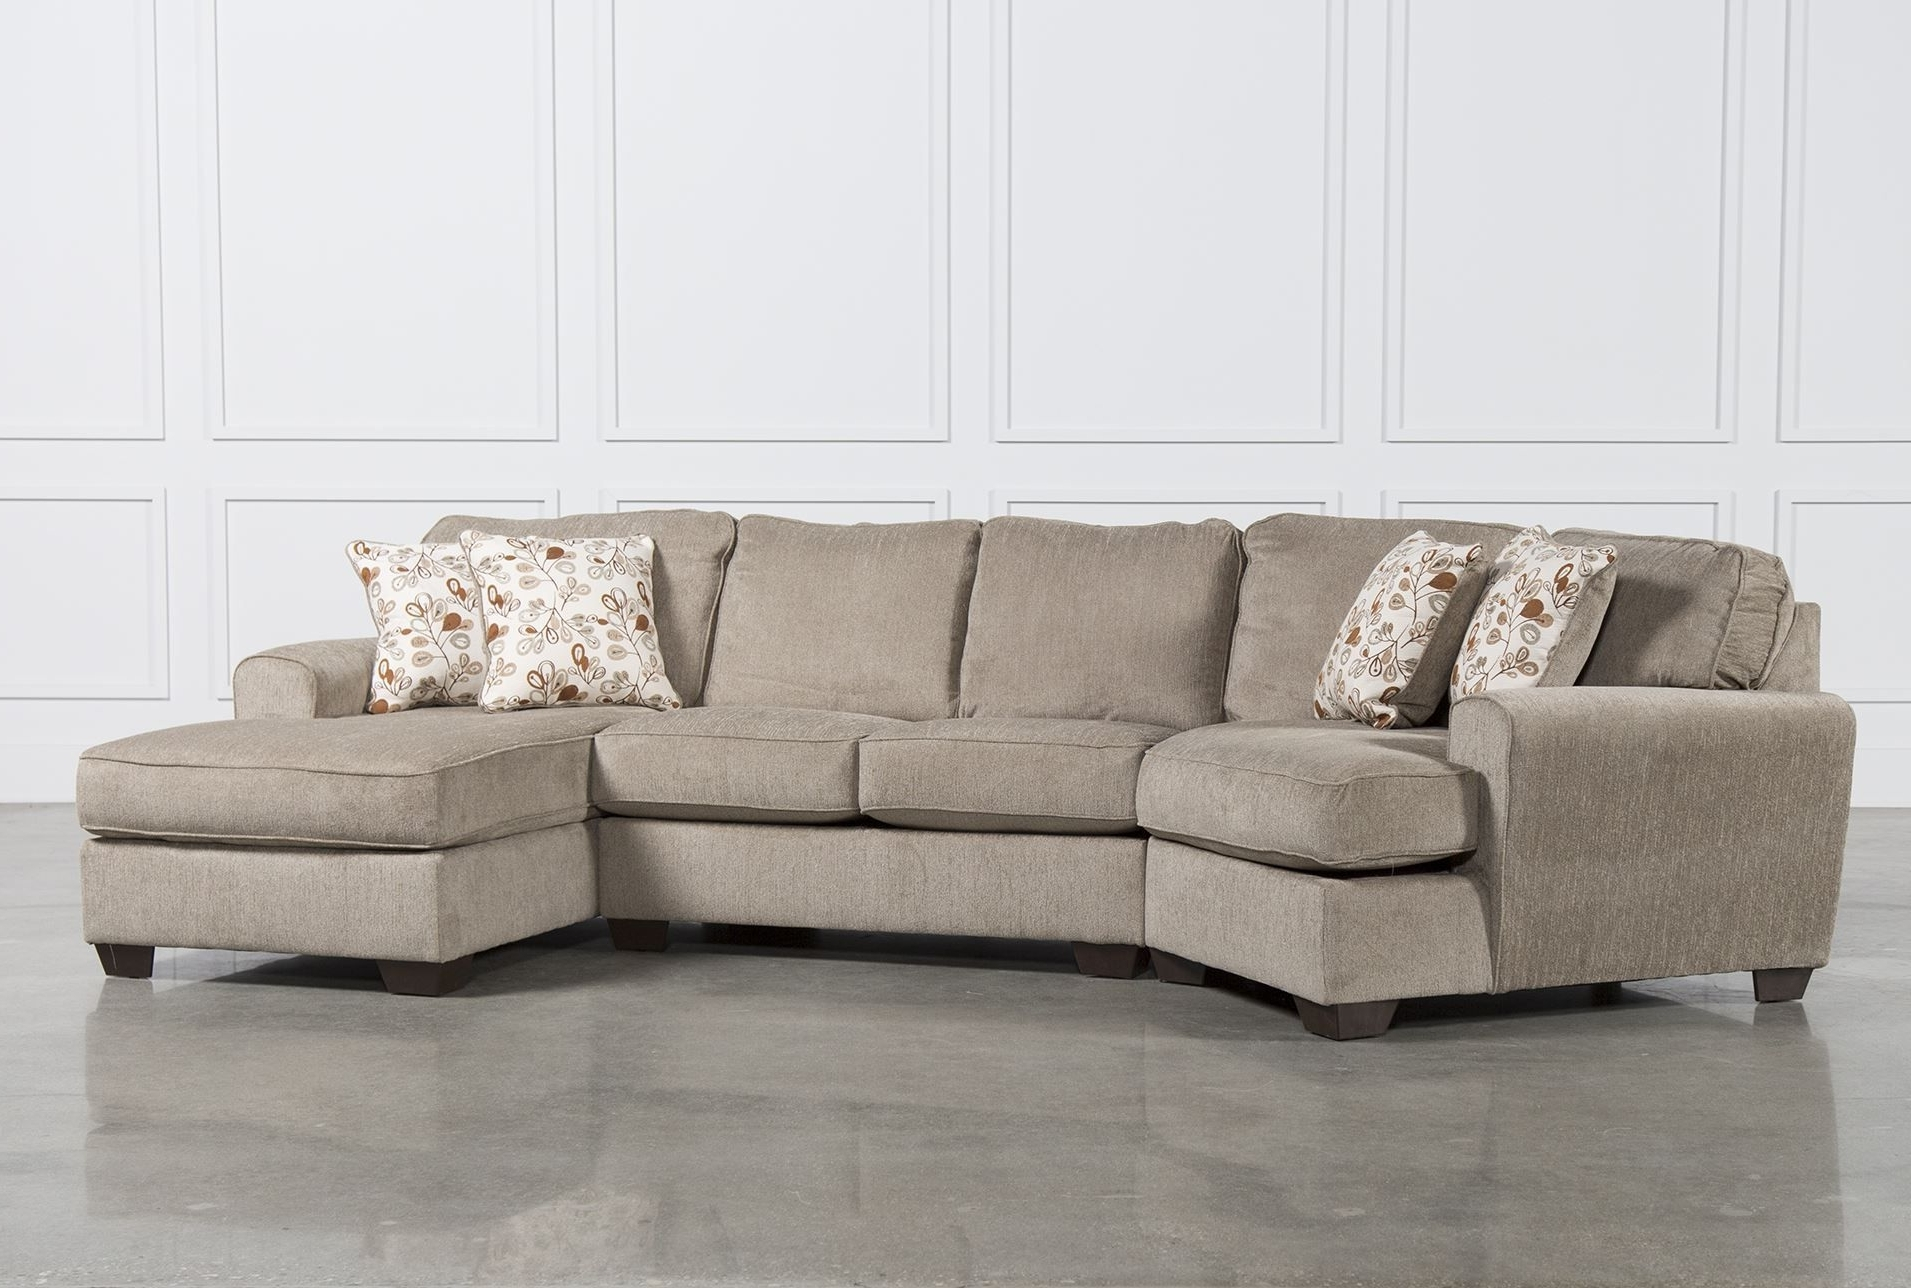 Patola Park 3 Piece Cuddler Sectional W/raf Corner Chaise (View 8 of 15)